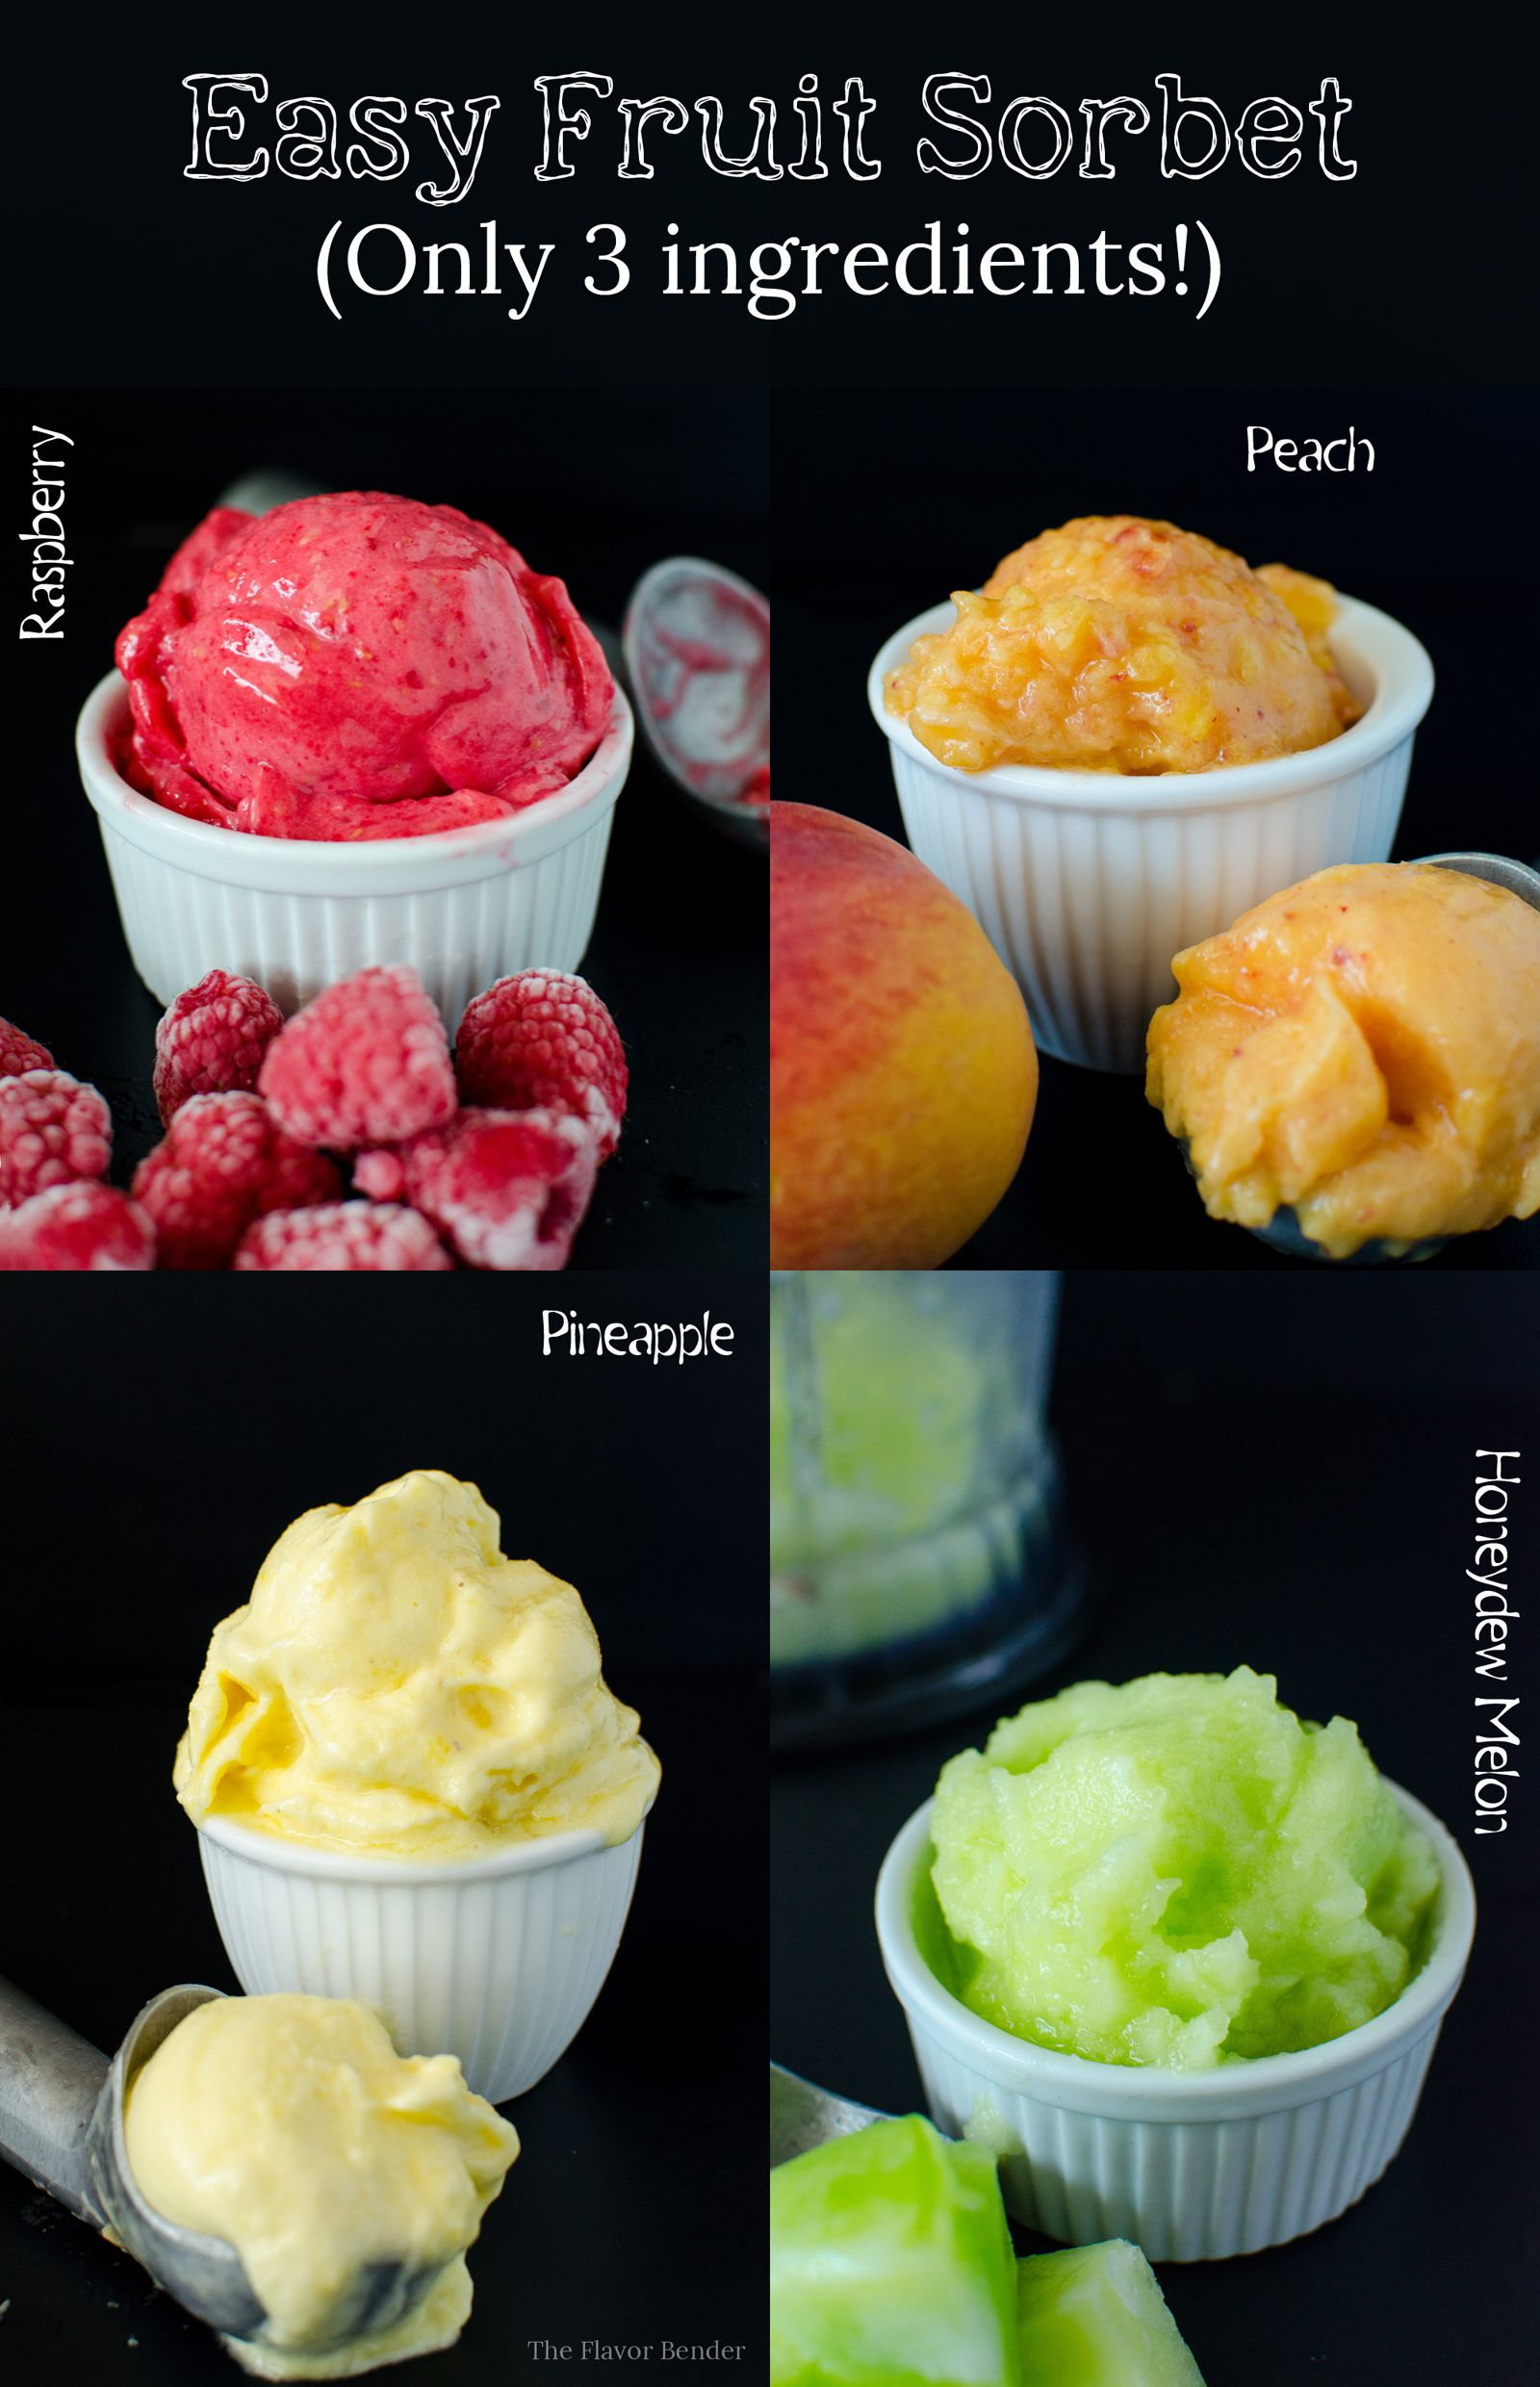 Easy fruit sorbet only 3 ingredients and so many flavors